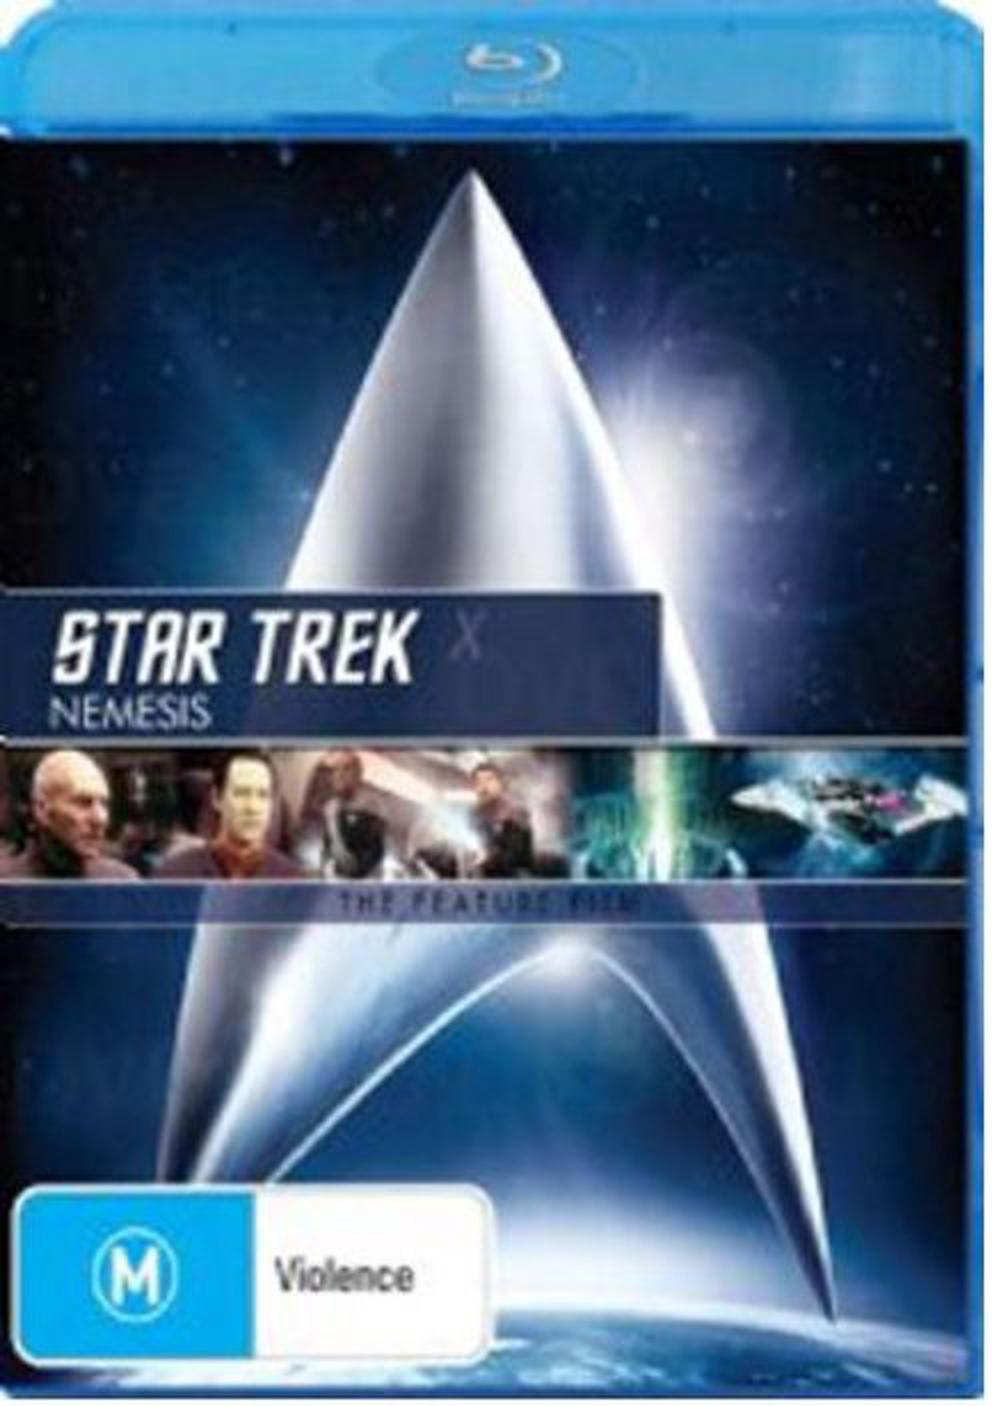 Star Trek I: The Motion Picture - The Feature Film